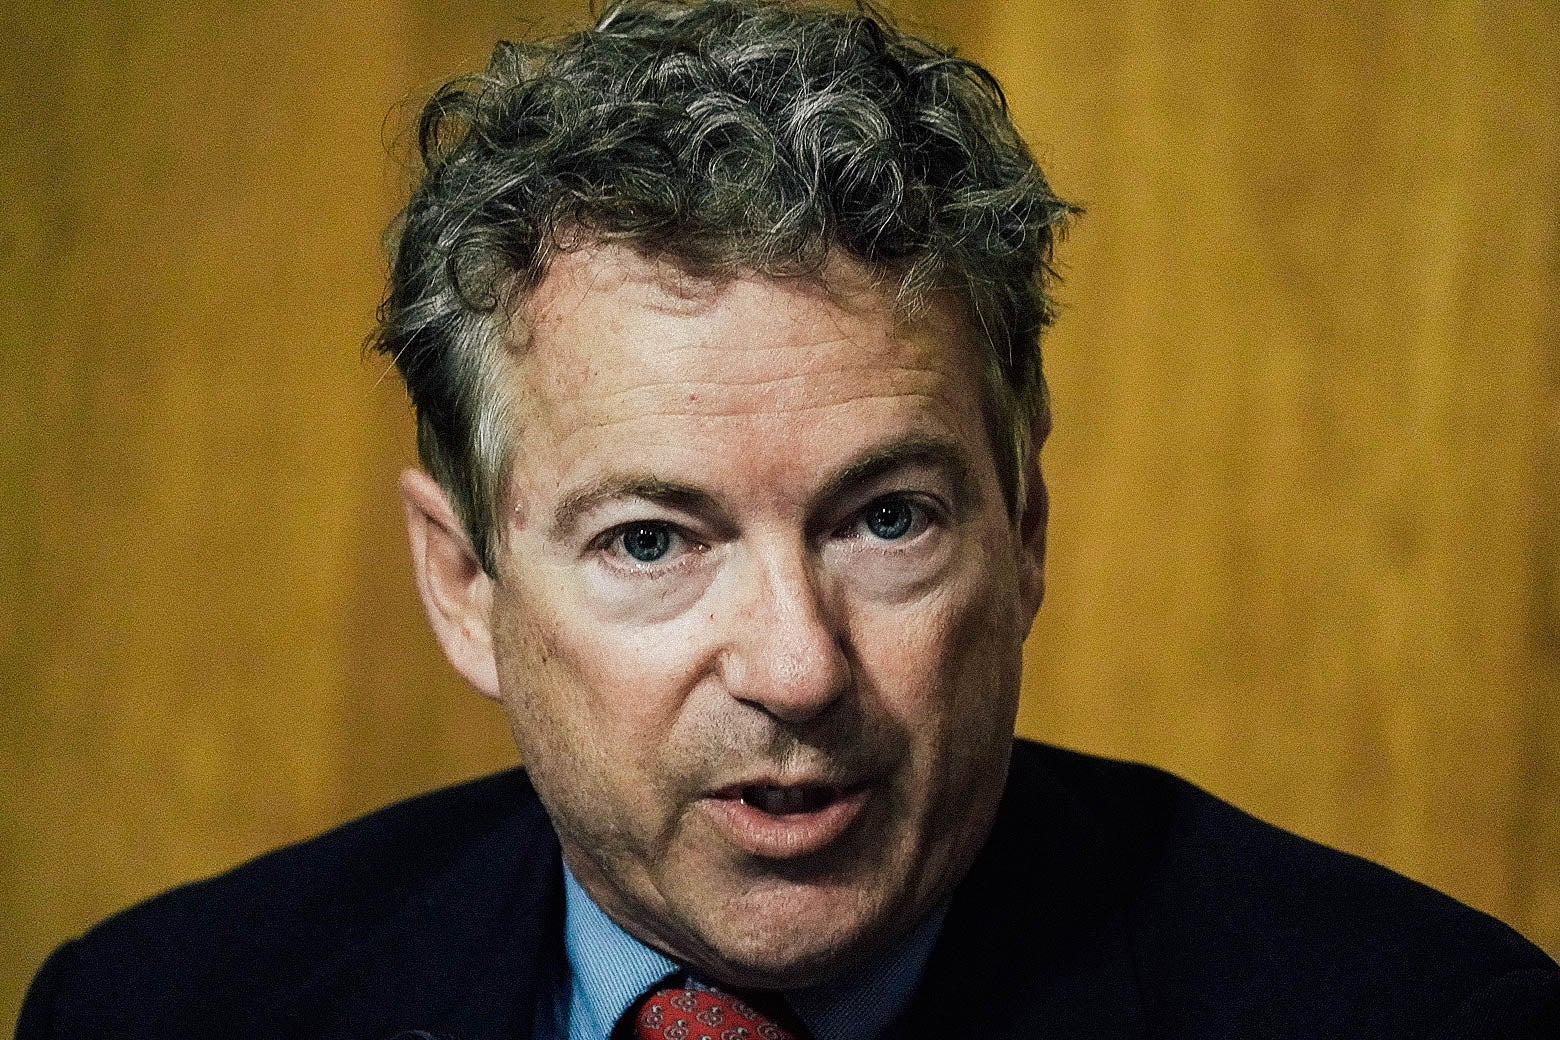 Rand Paul speaks during a Senate Foreign Relations Committee meeting on Apr. 23, 2018 in Washington, DC.